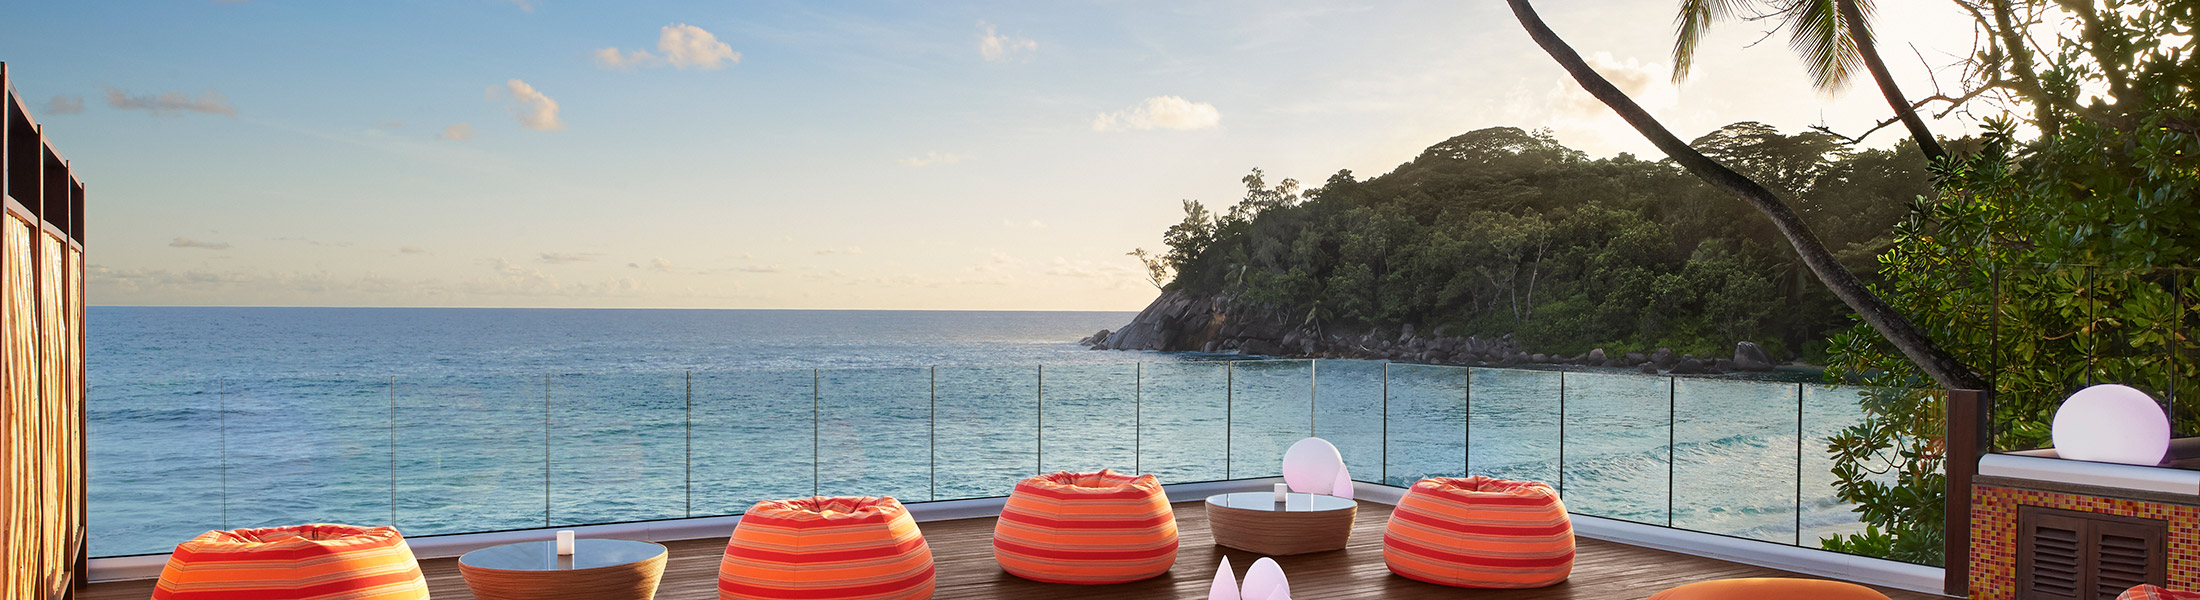 Gravity Bar overlooking the Indian Ocean at AVANI Barbarons Seychelles